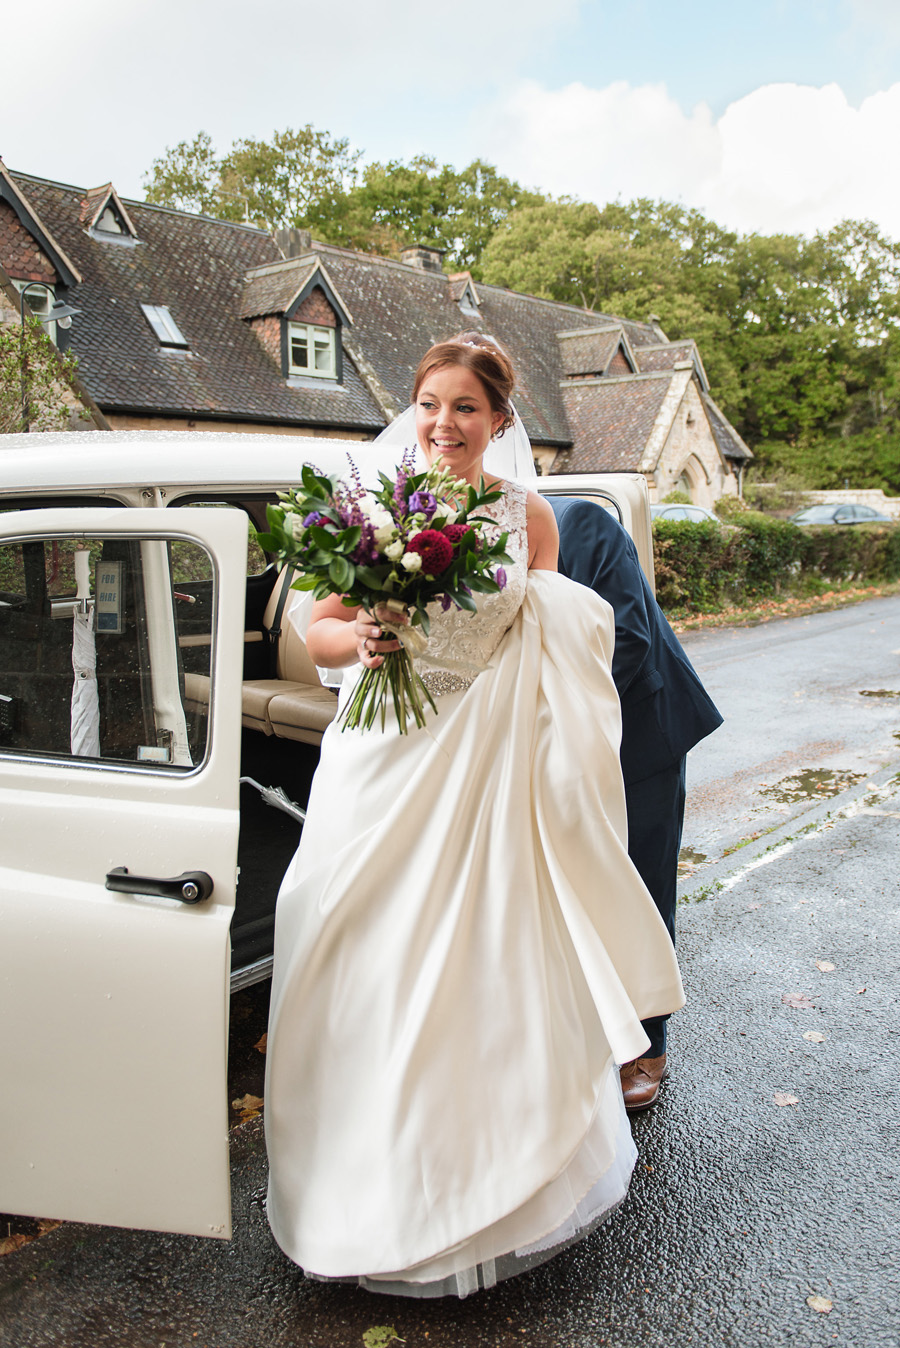 Stunning real wedding at Salomons Estate, images by Penny Young Photography (10)